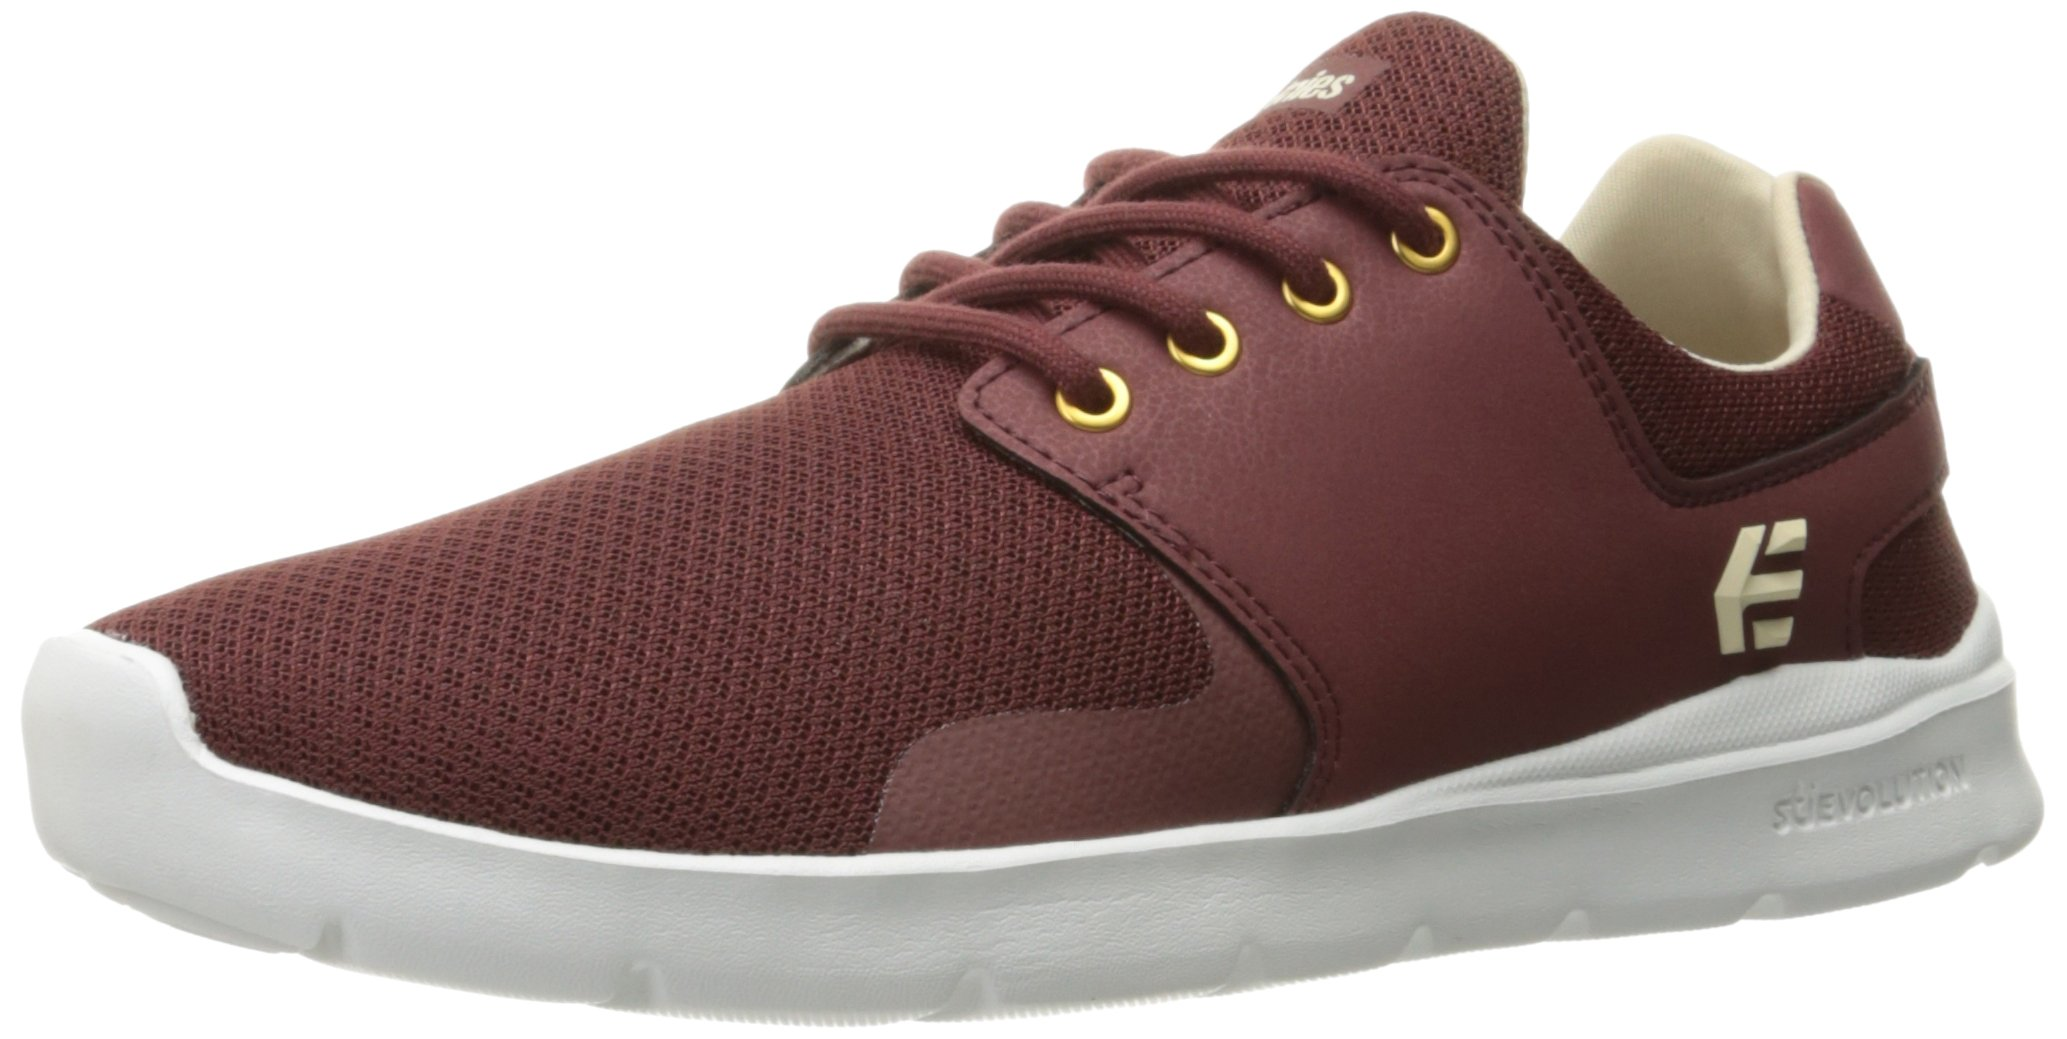 Eu9 De Scout Uk HommeRougeburgundy44 5 XtChaussures Etnies Skateboard 6yf7Ybgv